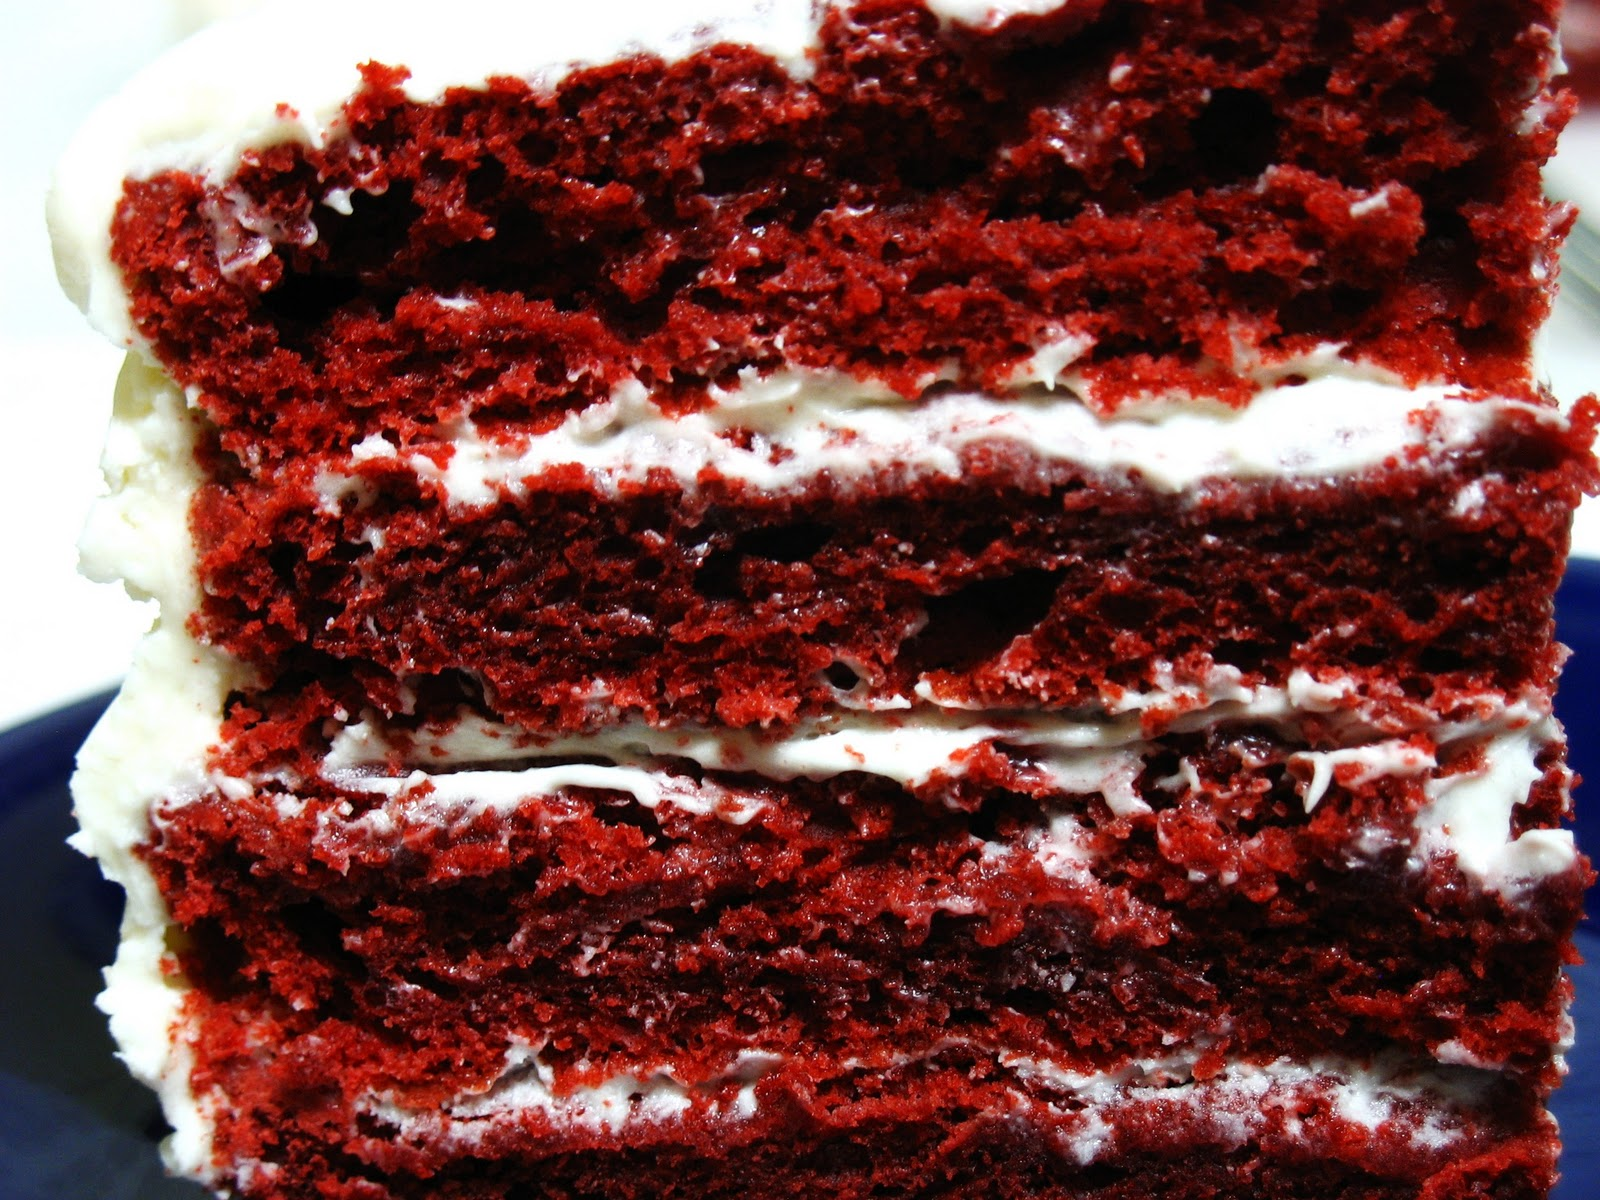 red velvet cake Create a red velvet cake recipe with our signature red velvet cake mix that will leave your friends and family begging for more.